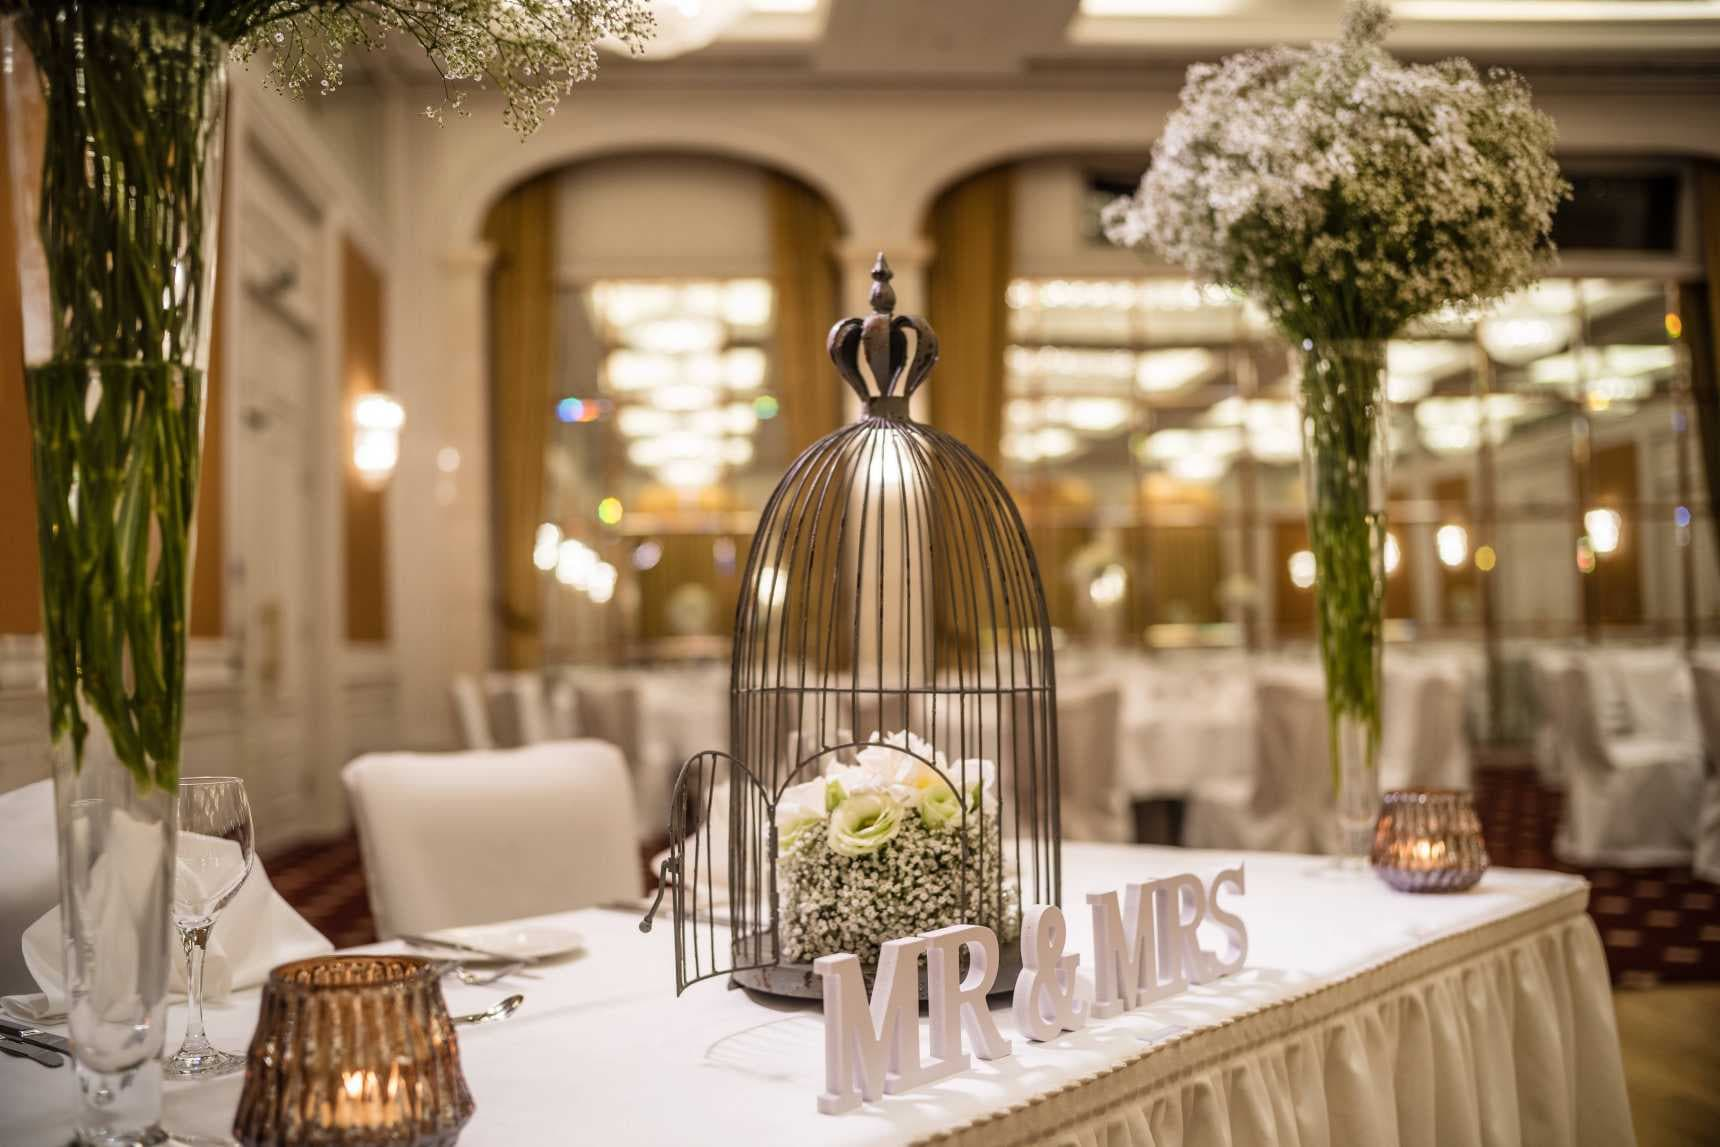 Table with candles and bird cage